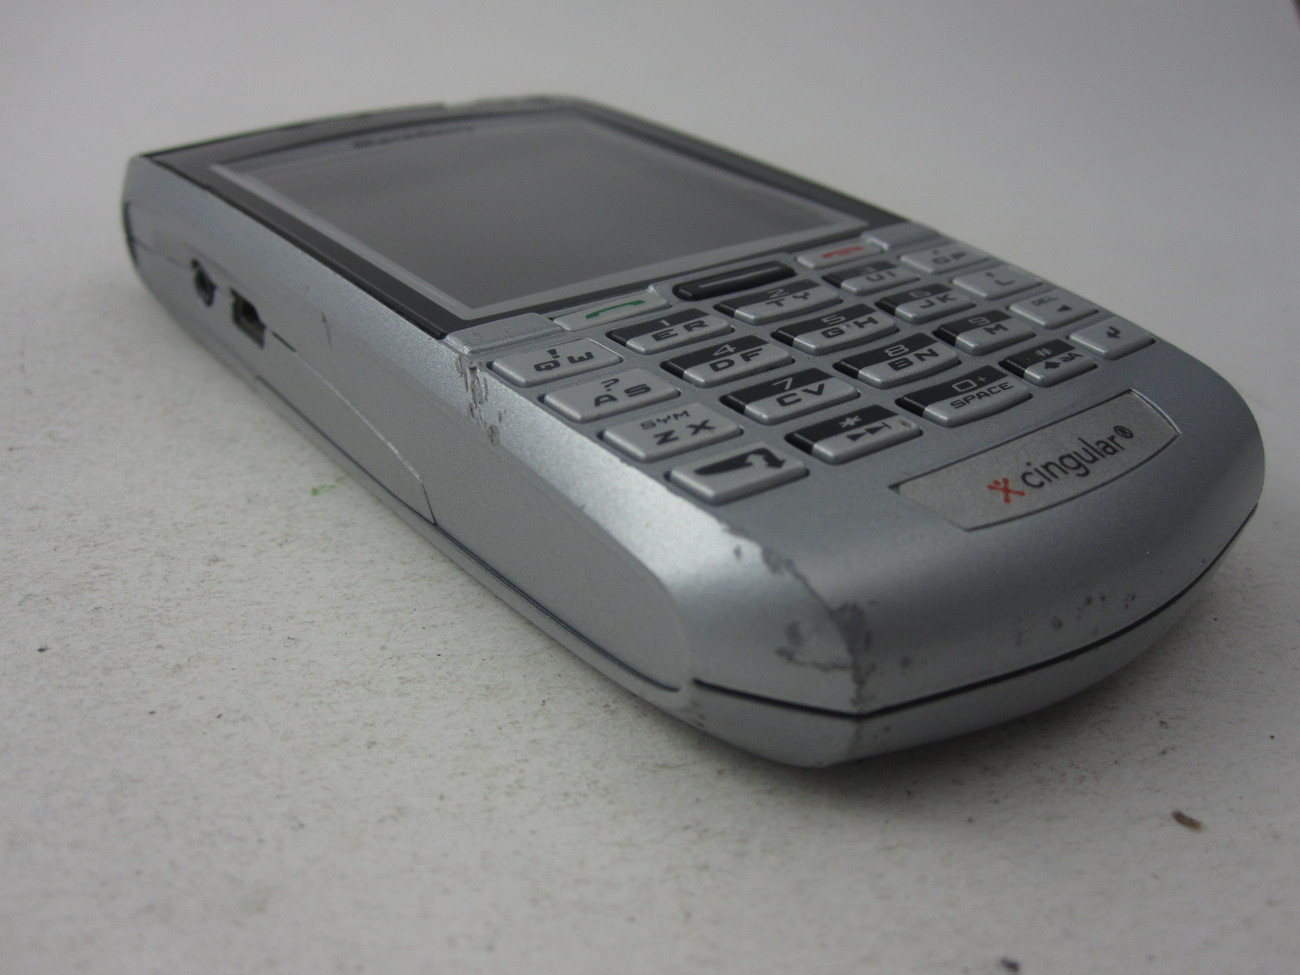 UNLOCKED AT&T Cingular Blackberry 7100G GSM QWERTY Cell Phone